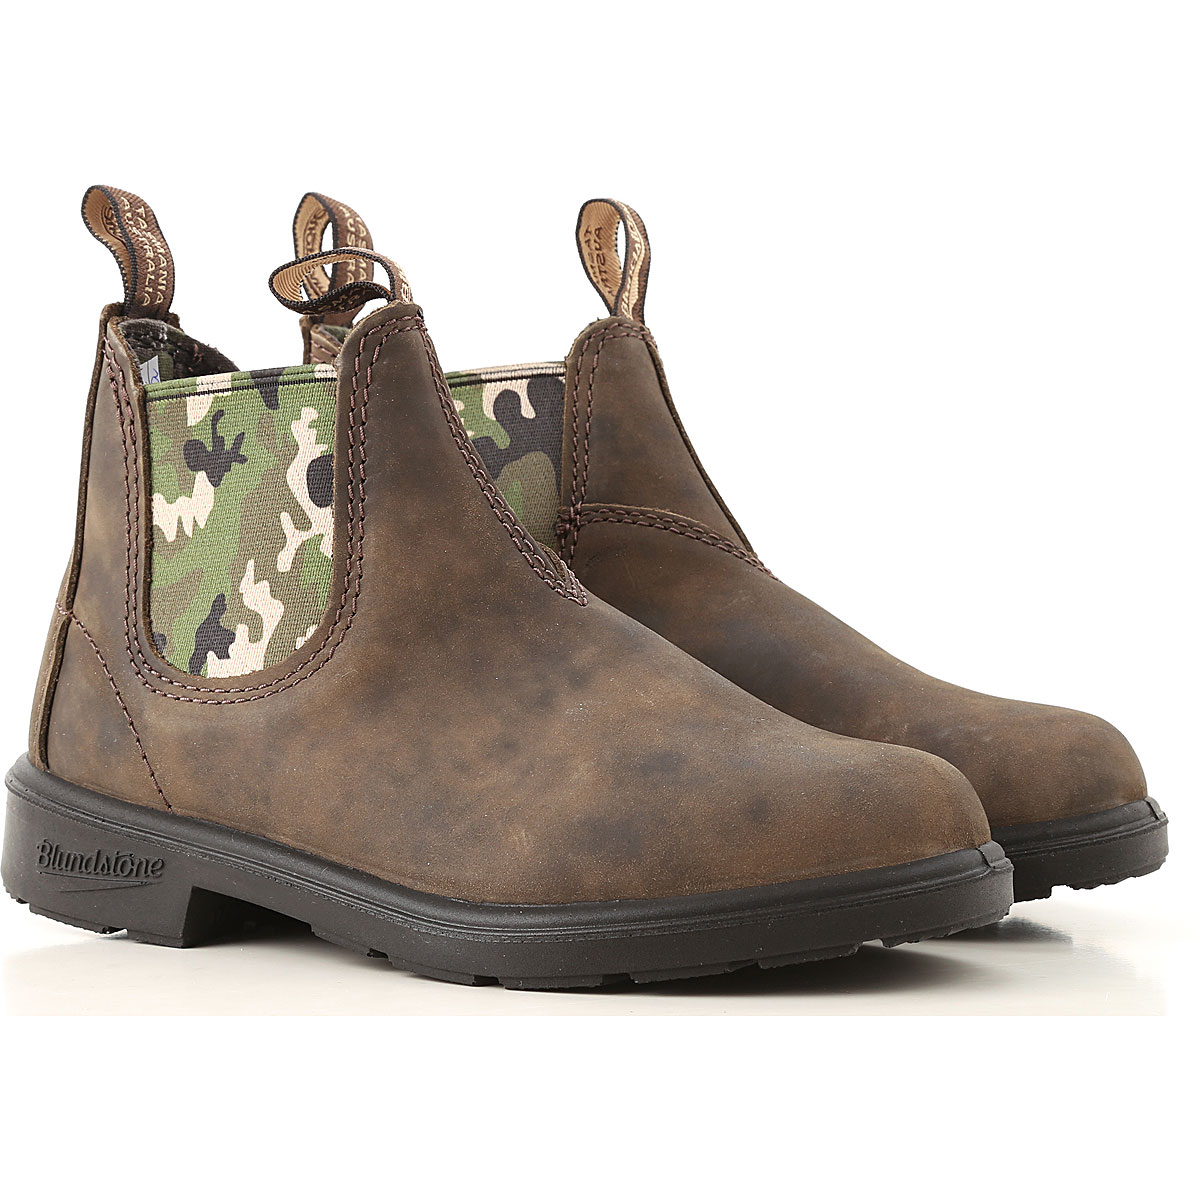 Image of Blundstone Boots, Brown, Suede leather, 2017, UK 8 - US 8.5 - EU 25.5 UK 9 - US 9.5 - EU 26.5 UK 10 - US 10.5 - EU 28 UK 11 - UK 11.5 - EU 29 UK 12 - US 12.5 - EU 30.5 UK 13 - US 13.5 - EU 32